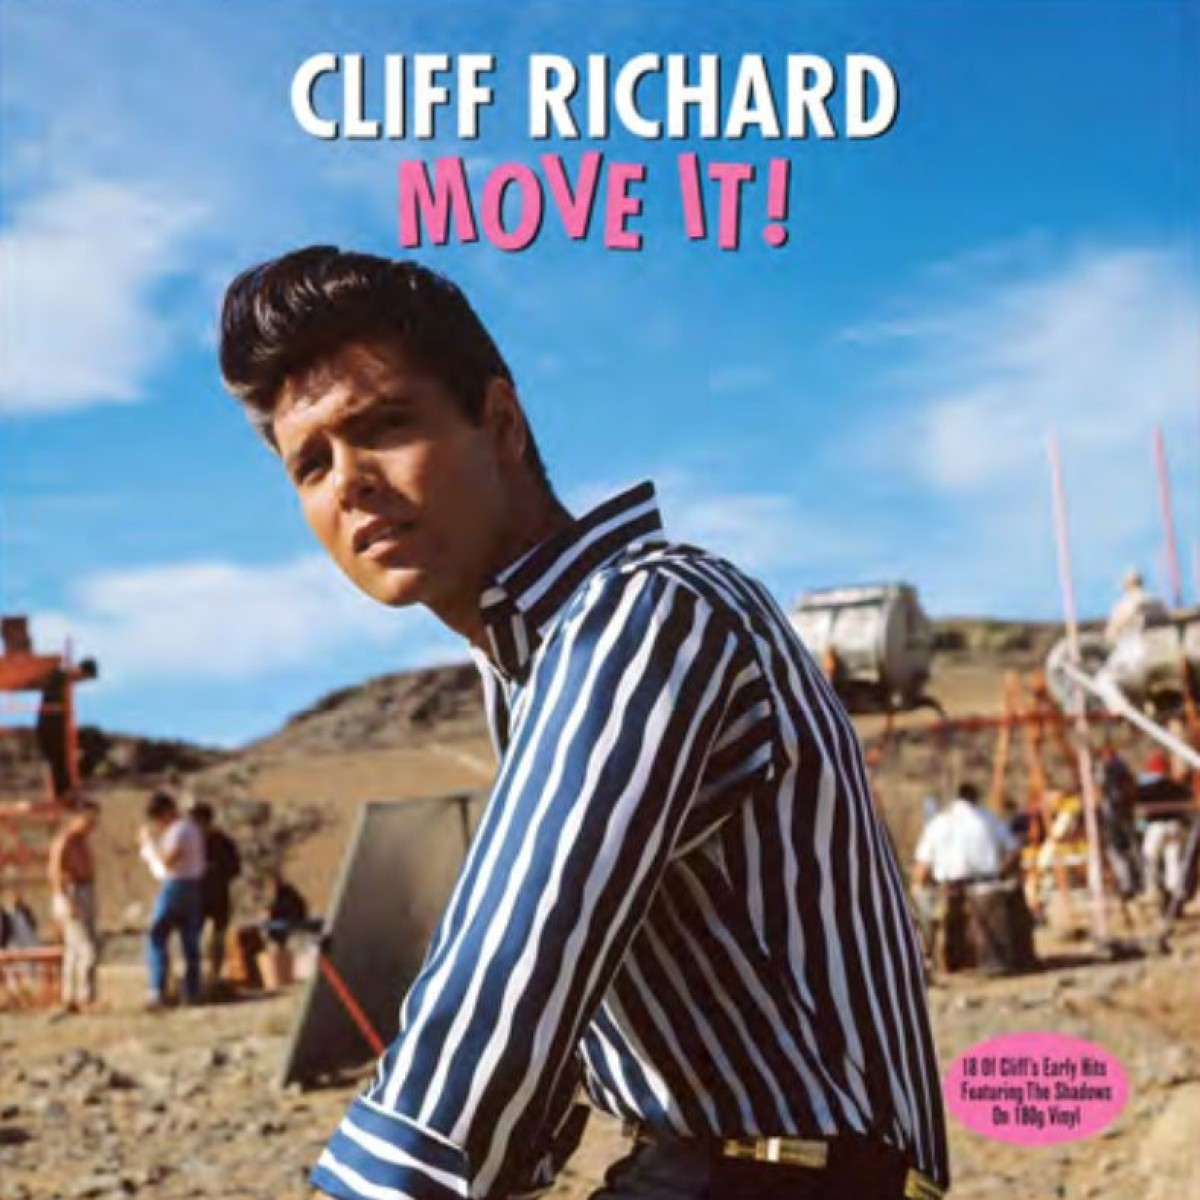 Richard, Cliff Move It!